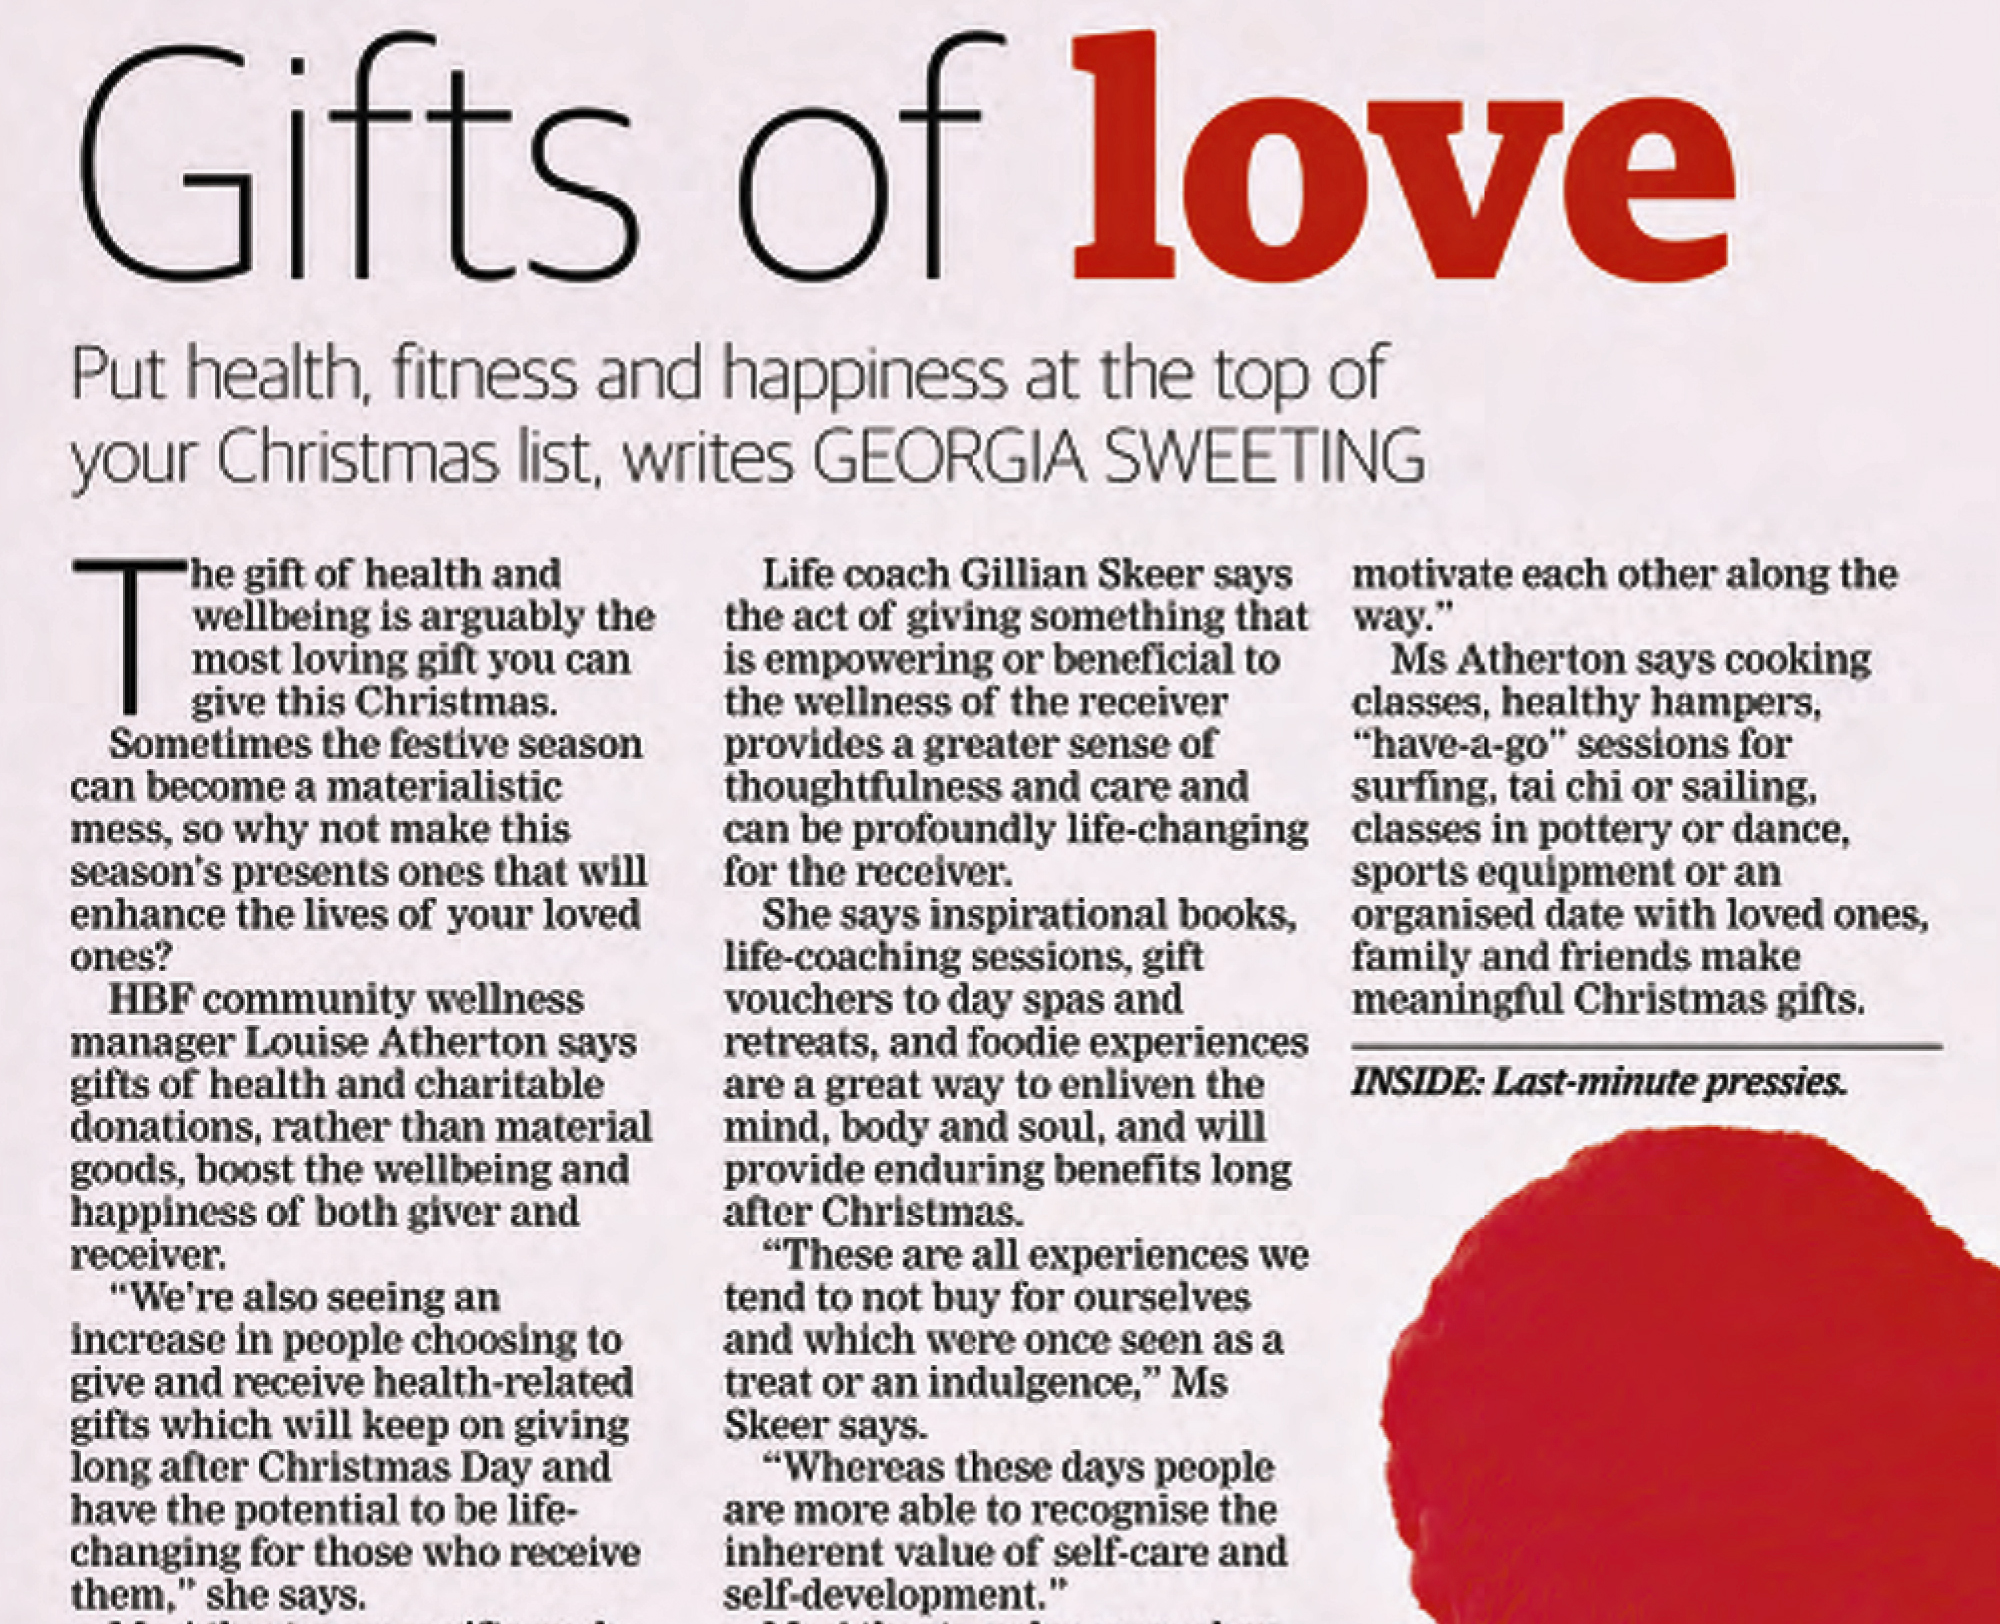 Gifts of Love The Western Australian Newspaper 23 Dec 2014 compressed cropped edited 1 Media